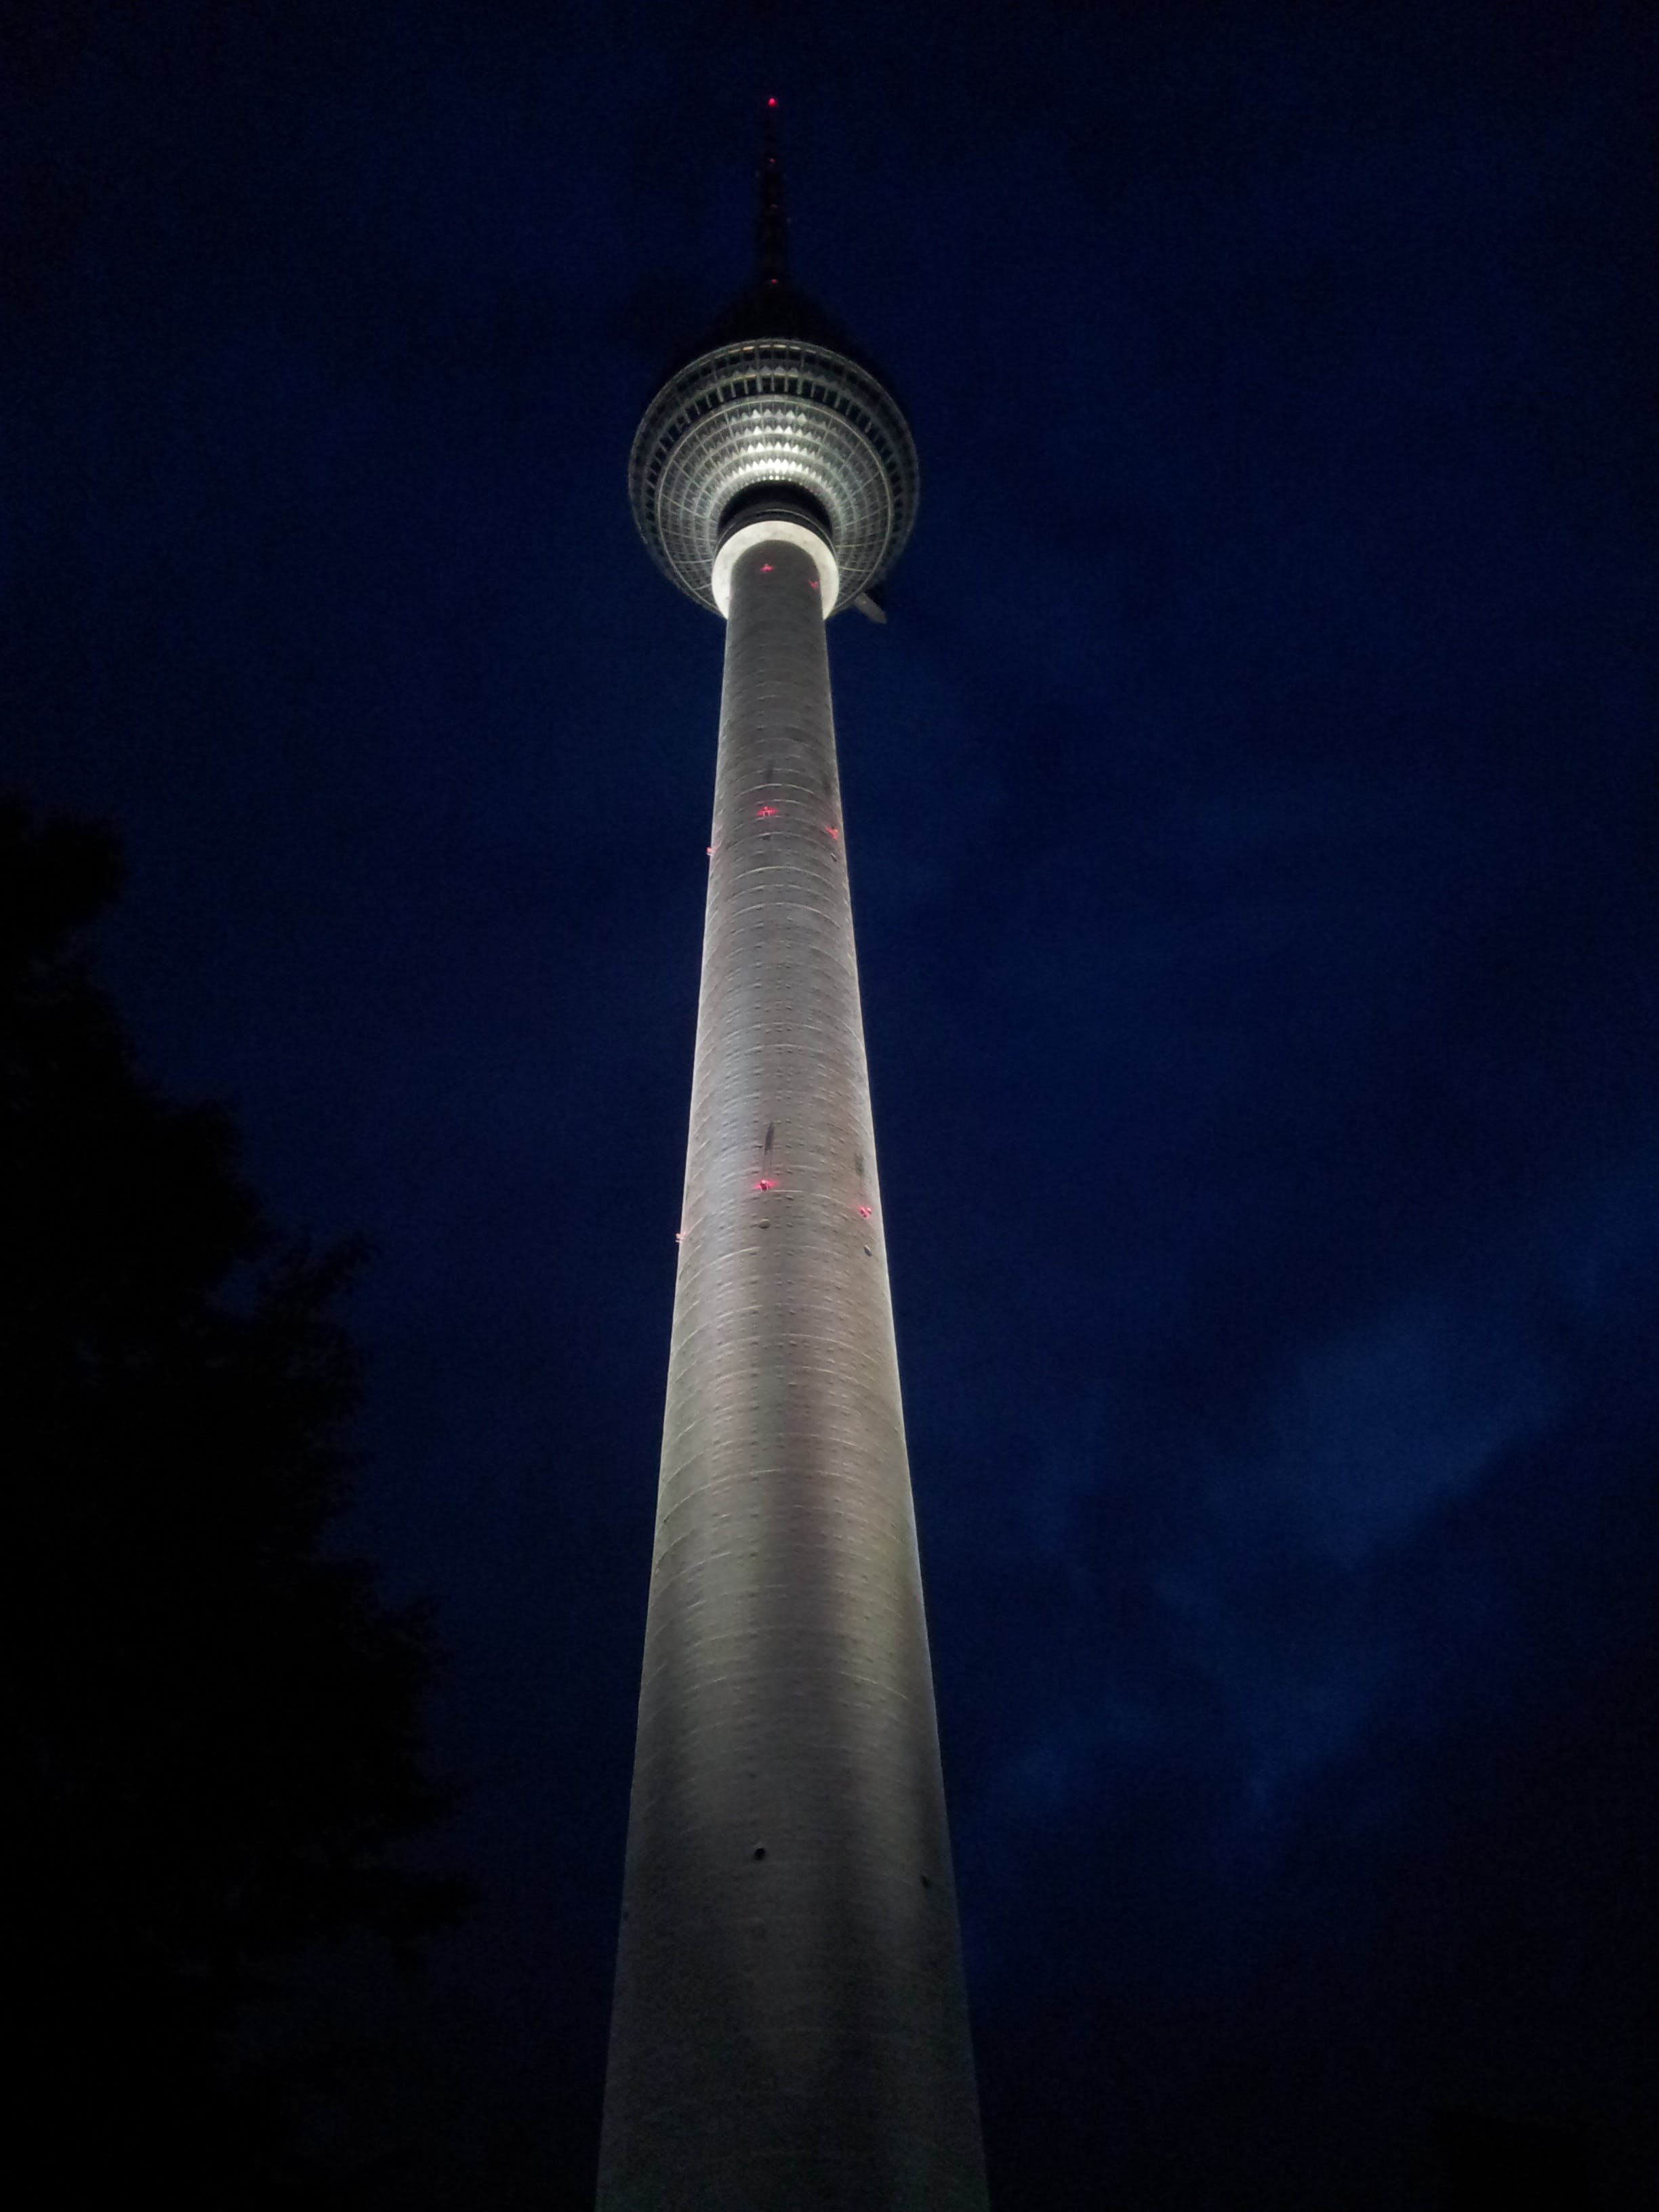 Free stock photo of alex, Alexanderplatz, berlin, tower